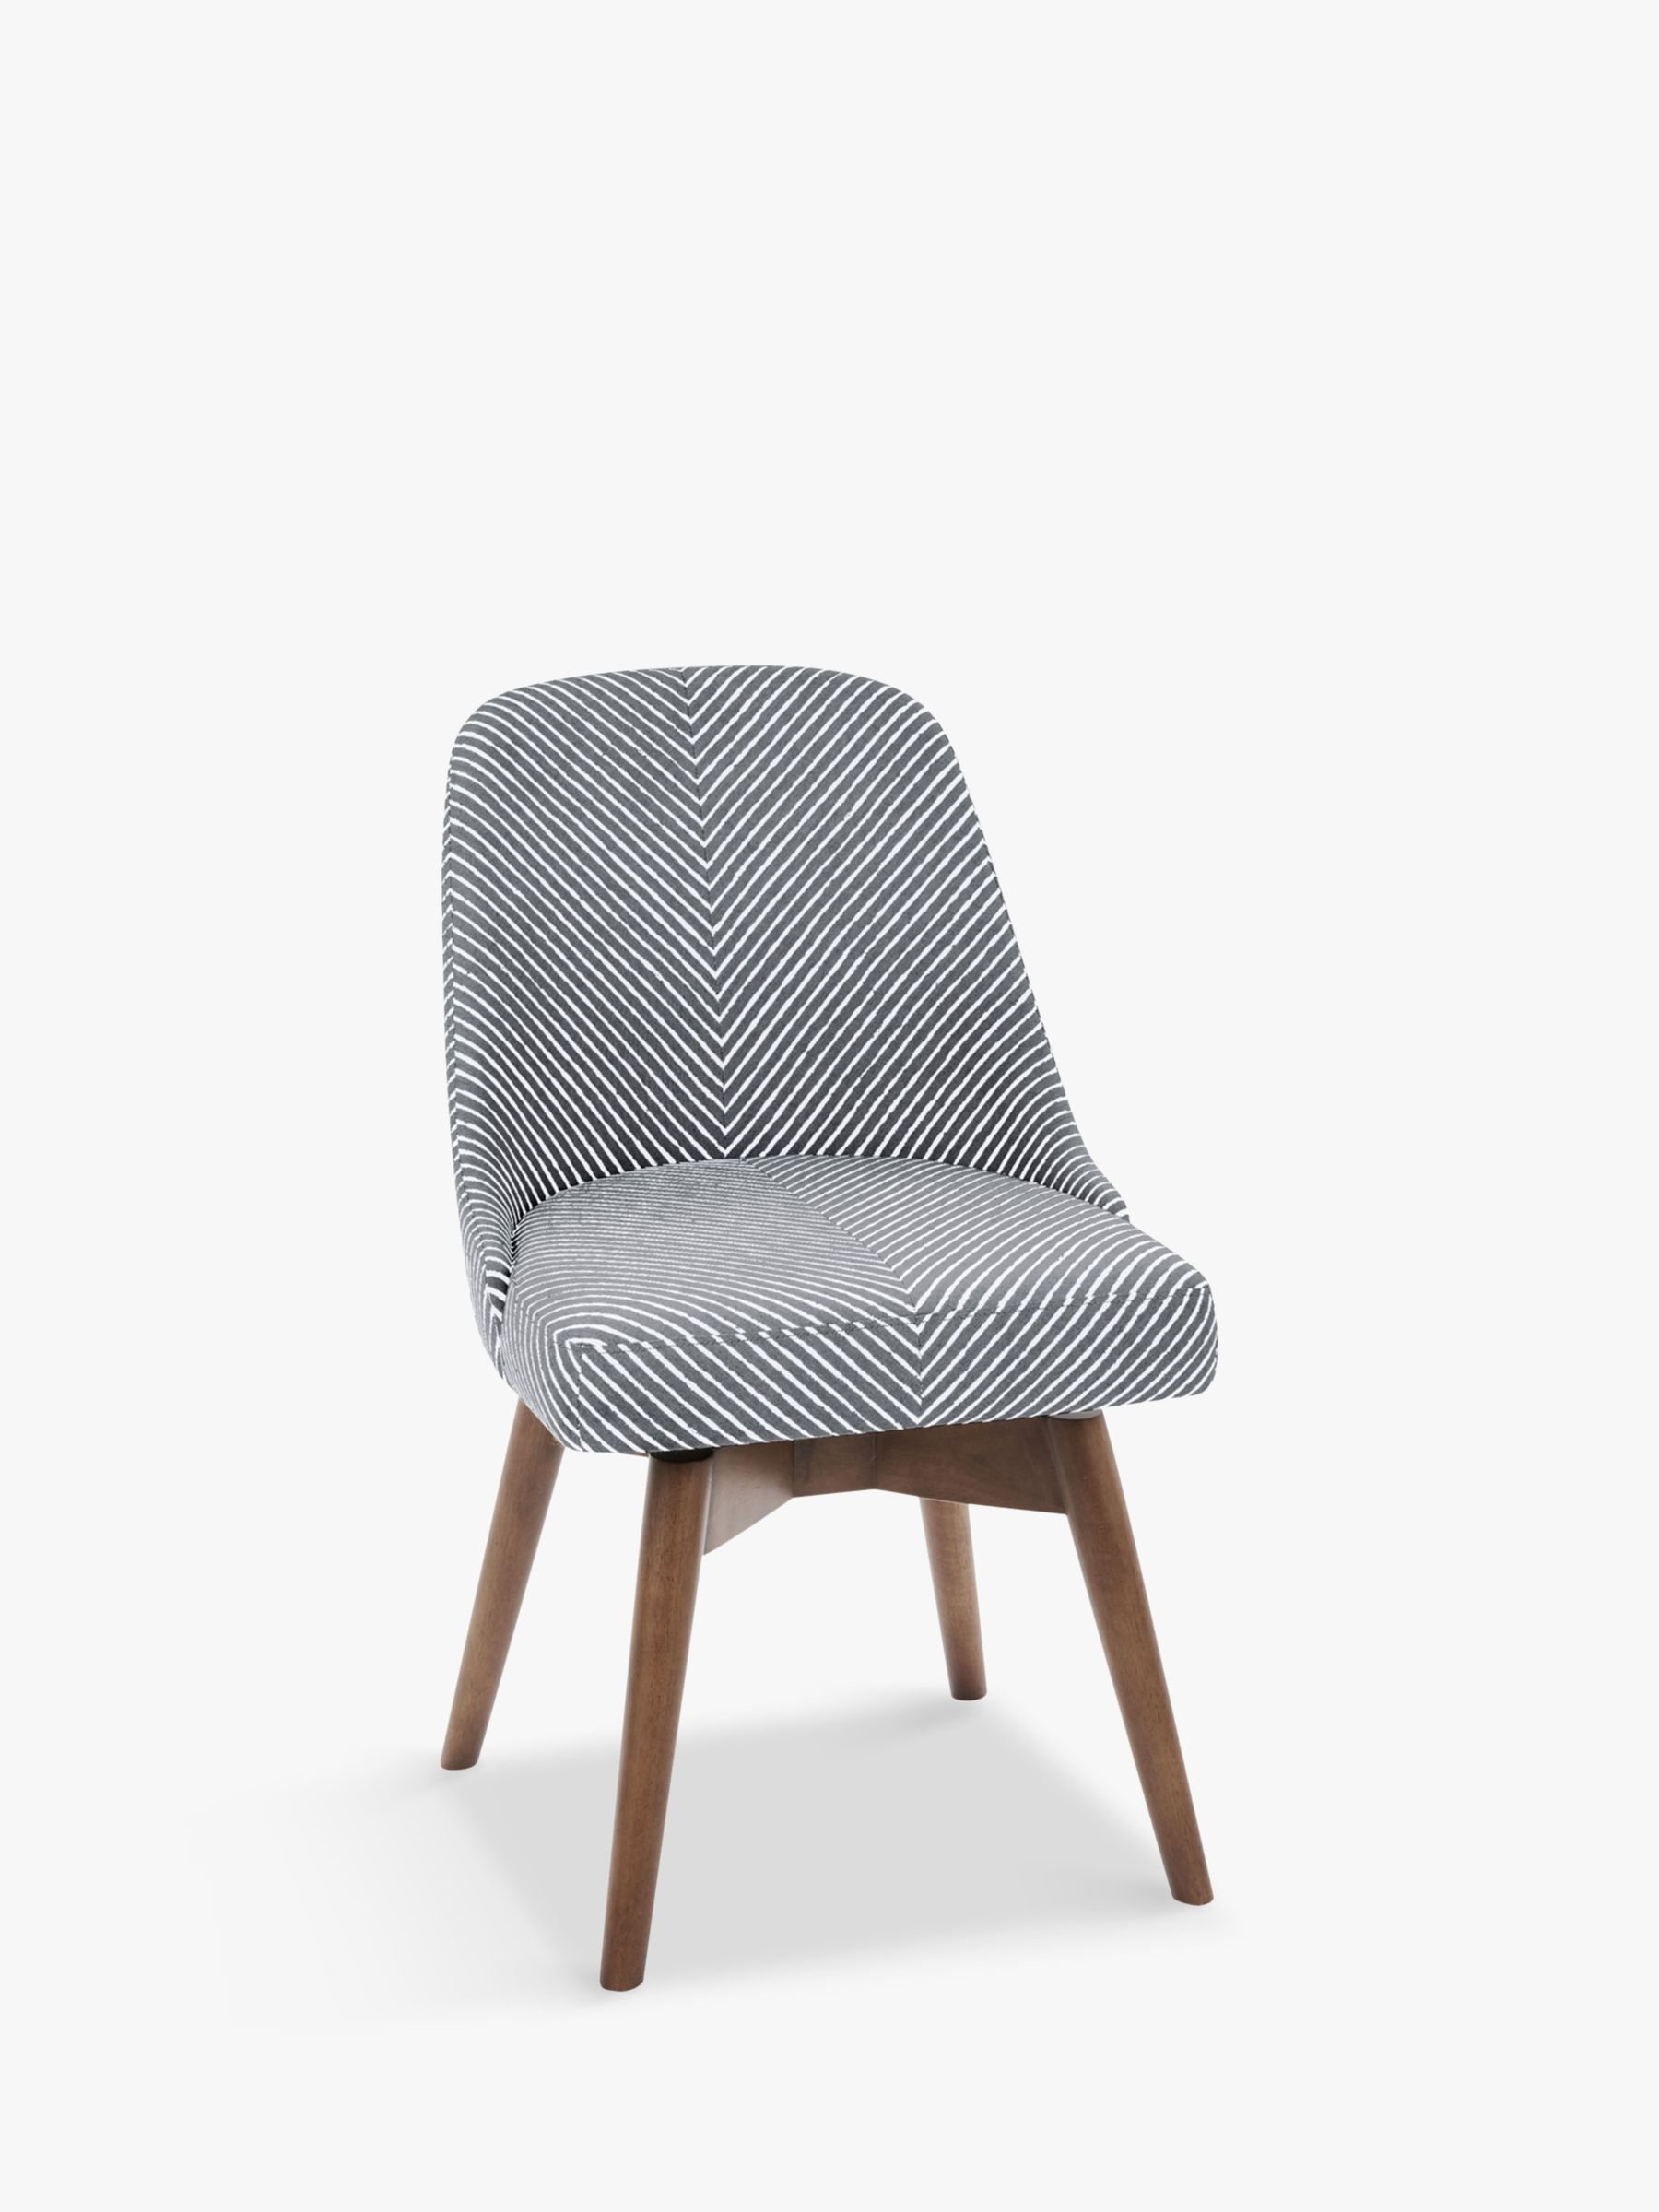 Image of: West Elm Mid Century Office Chair Gravel Stripe At John Lewis Partners